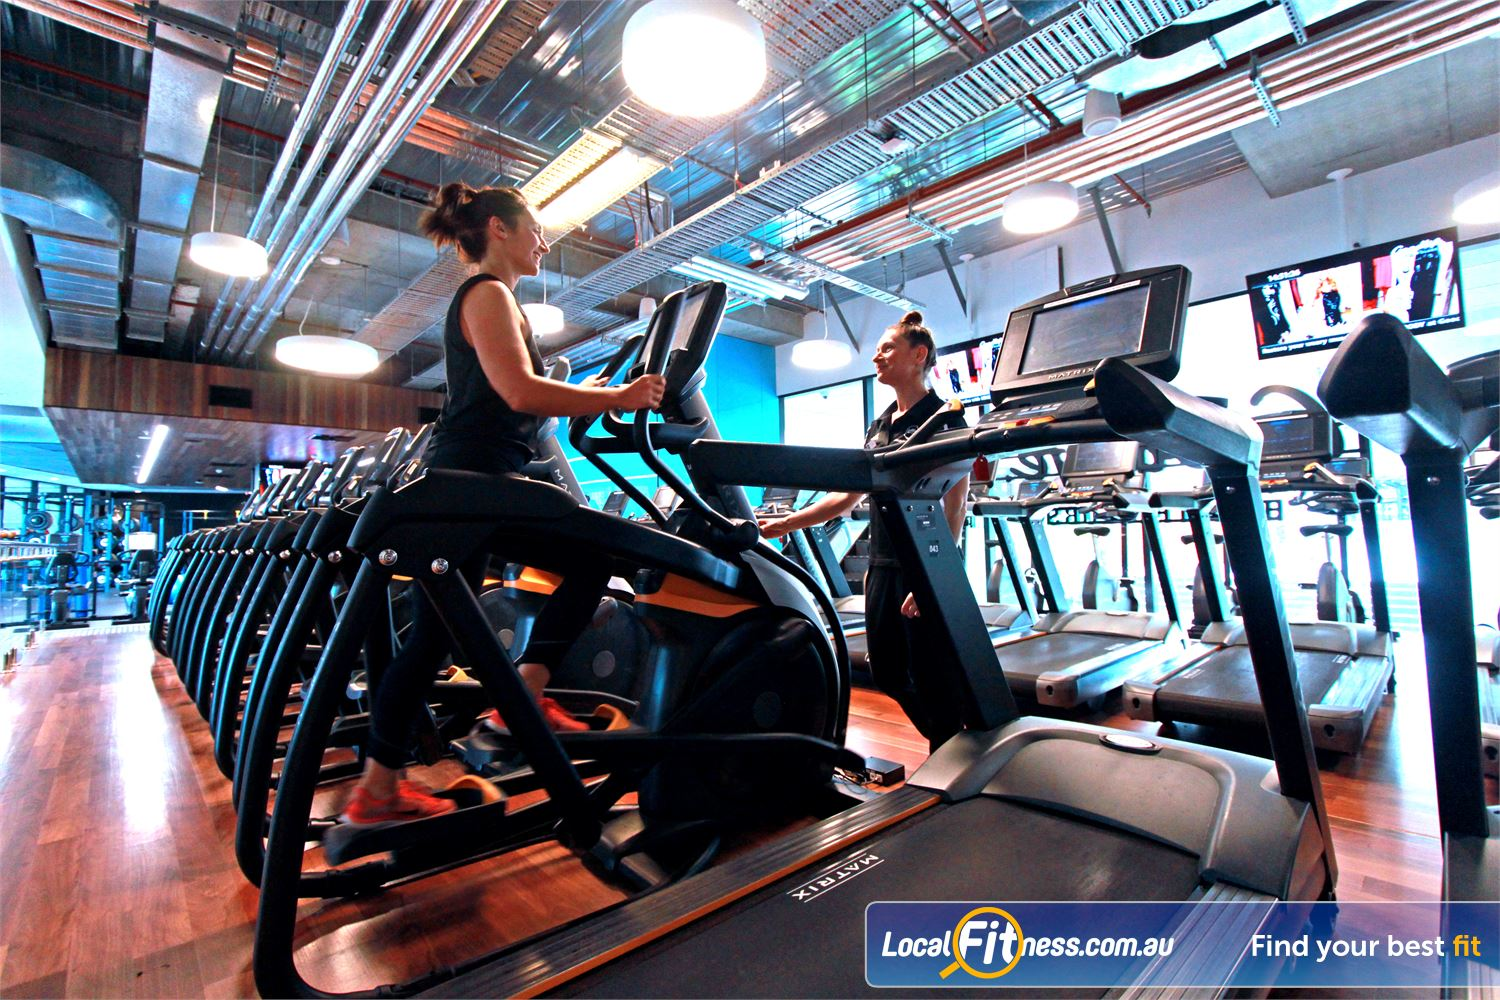 Goodlife Health Clubs Near South Melbourne Docklands personal training is a great way to guide you to success.